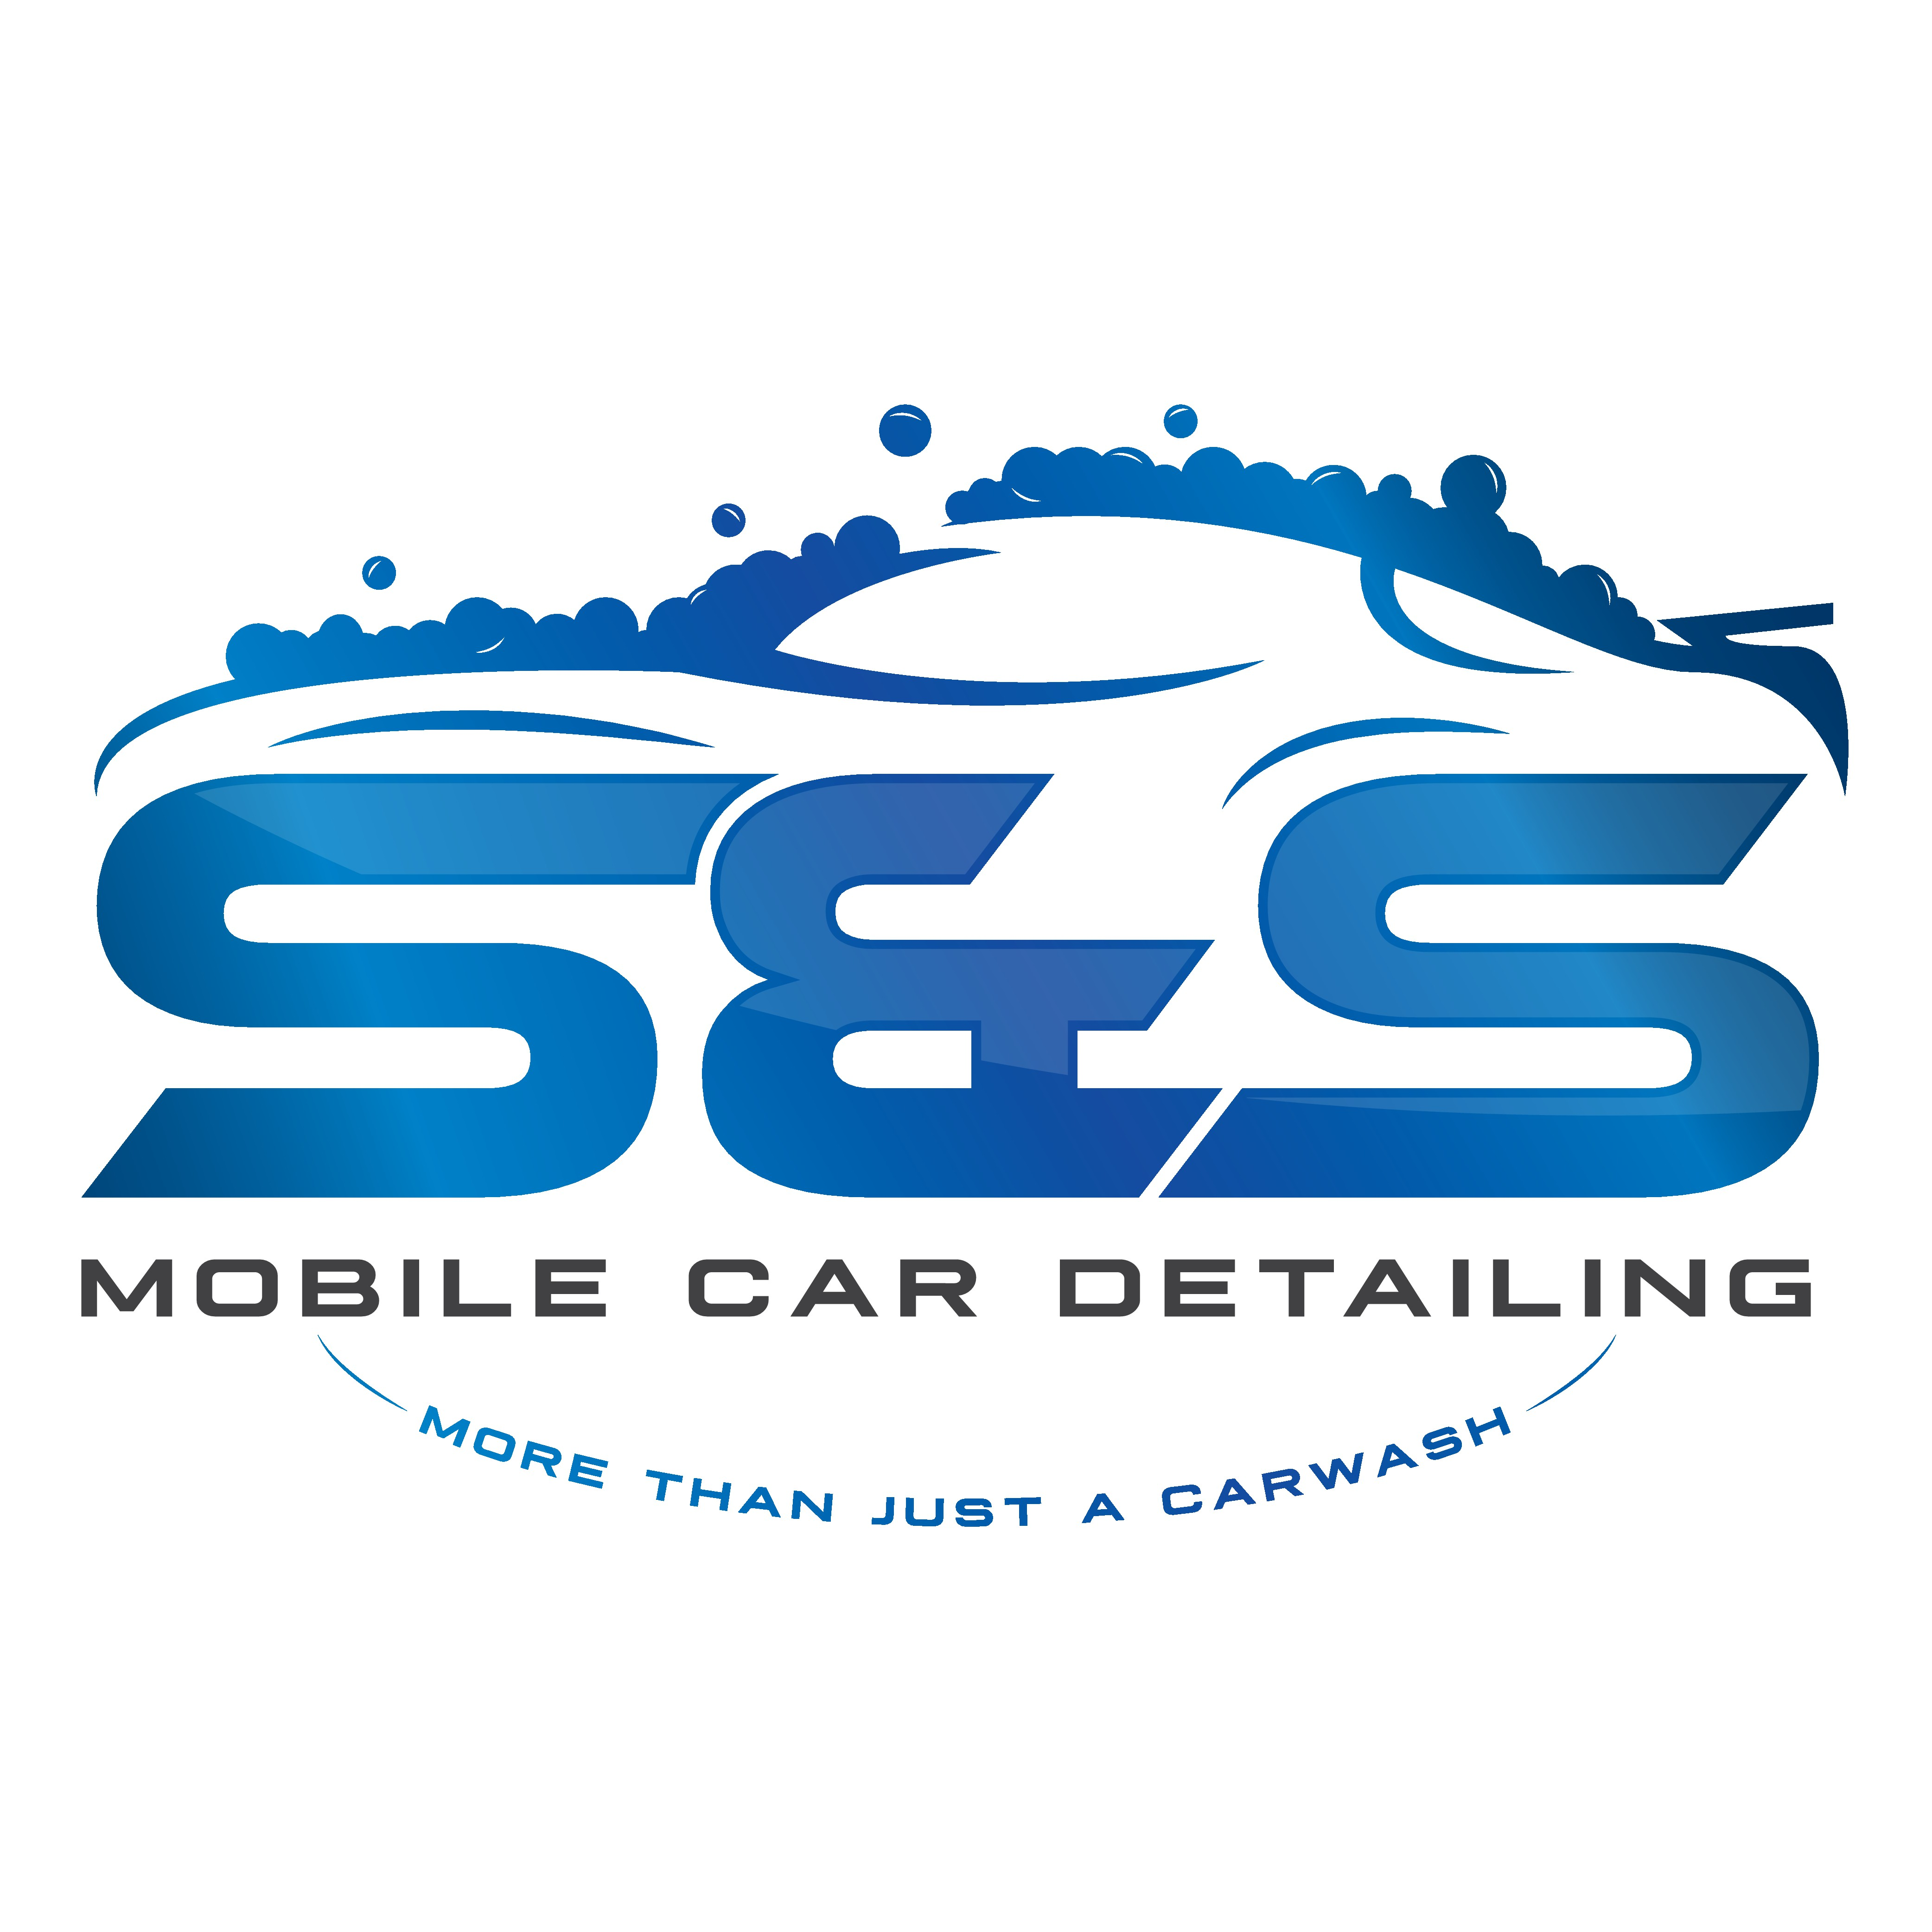 i want a cool, easy to read logo for my car detailing business